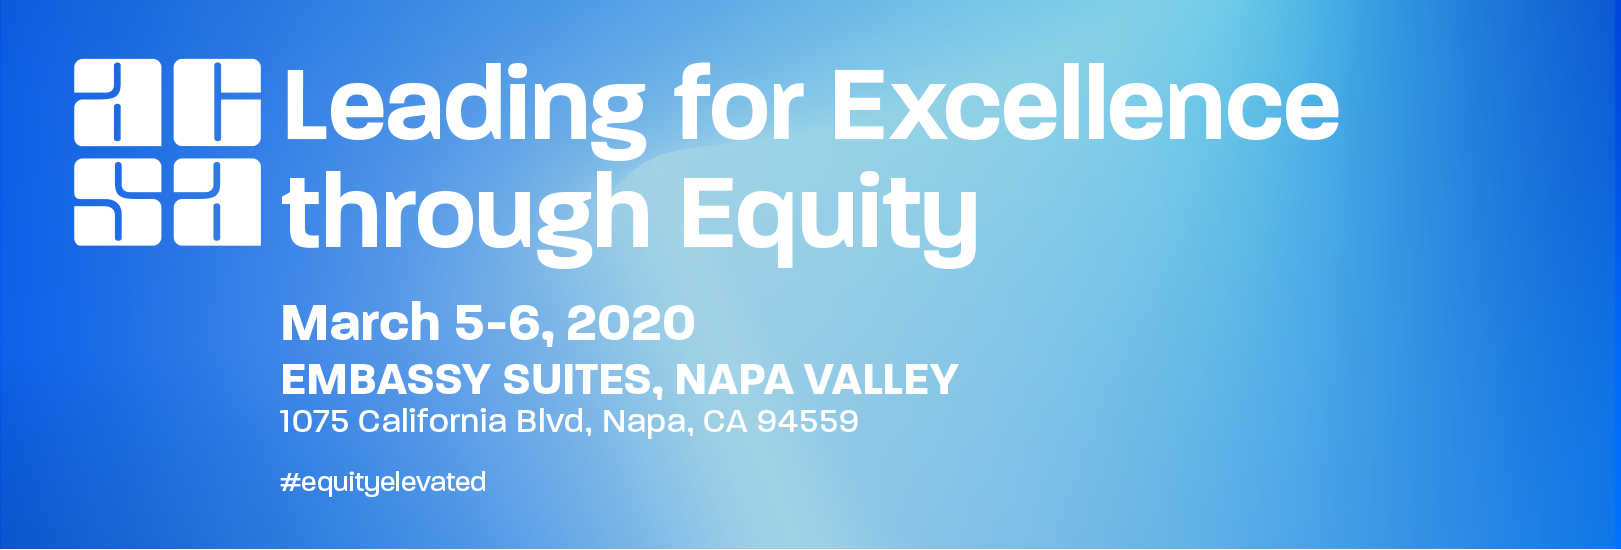 2020 Leading for Excellence through Equity Conference